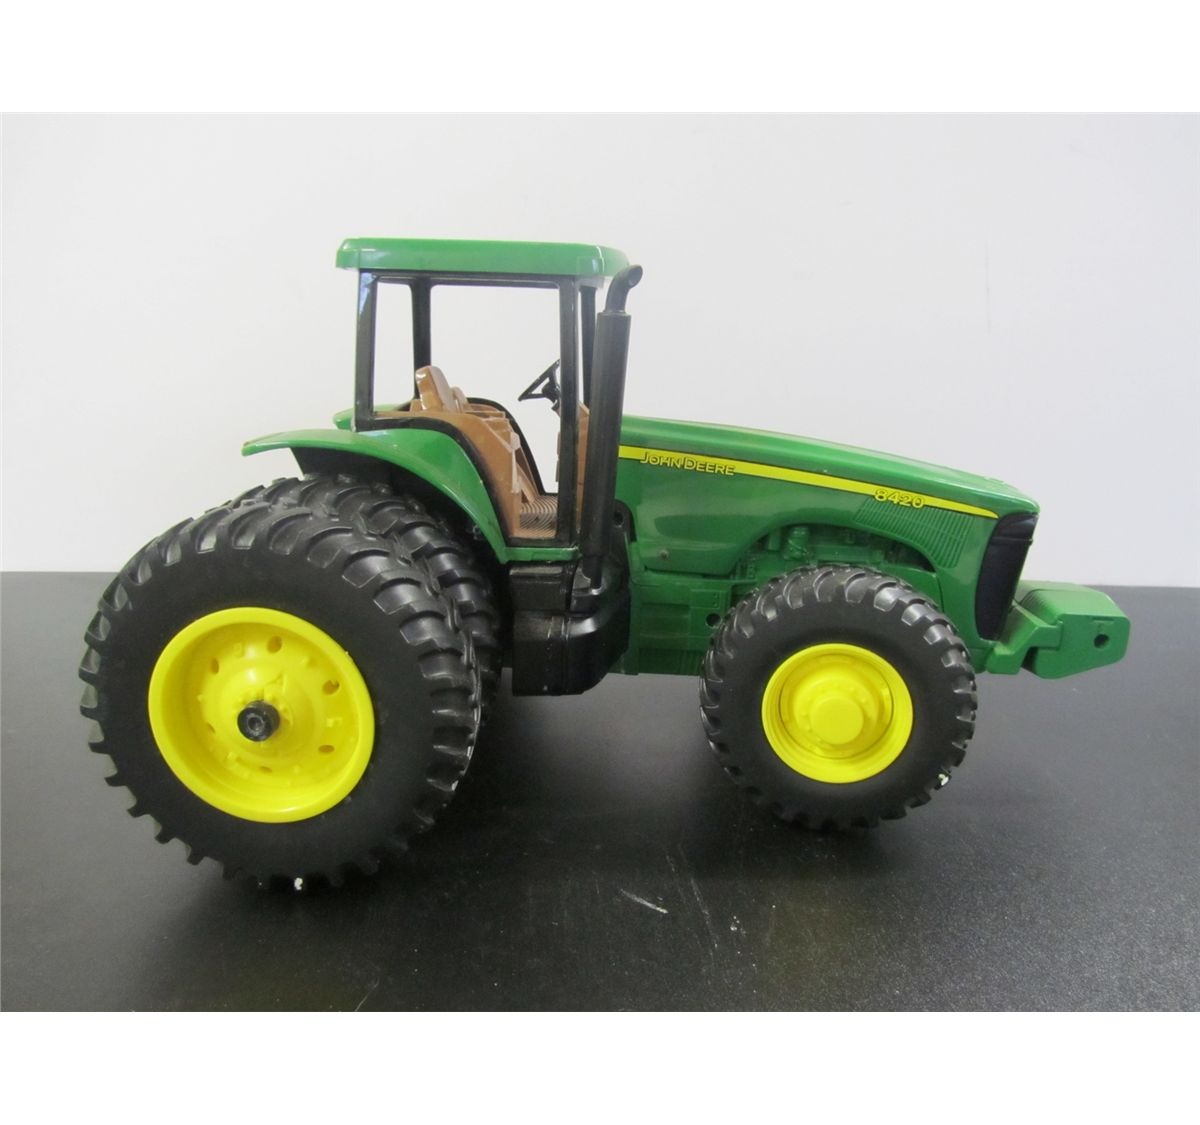 John Deere 8420 Toy Tractor 1/18 Scale - Dual Rears and ...